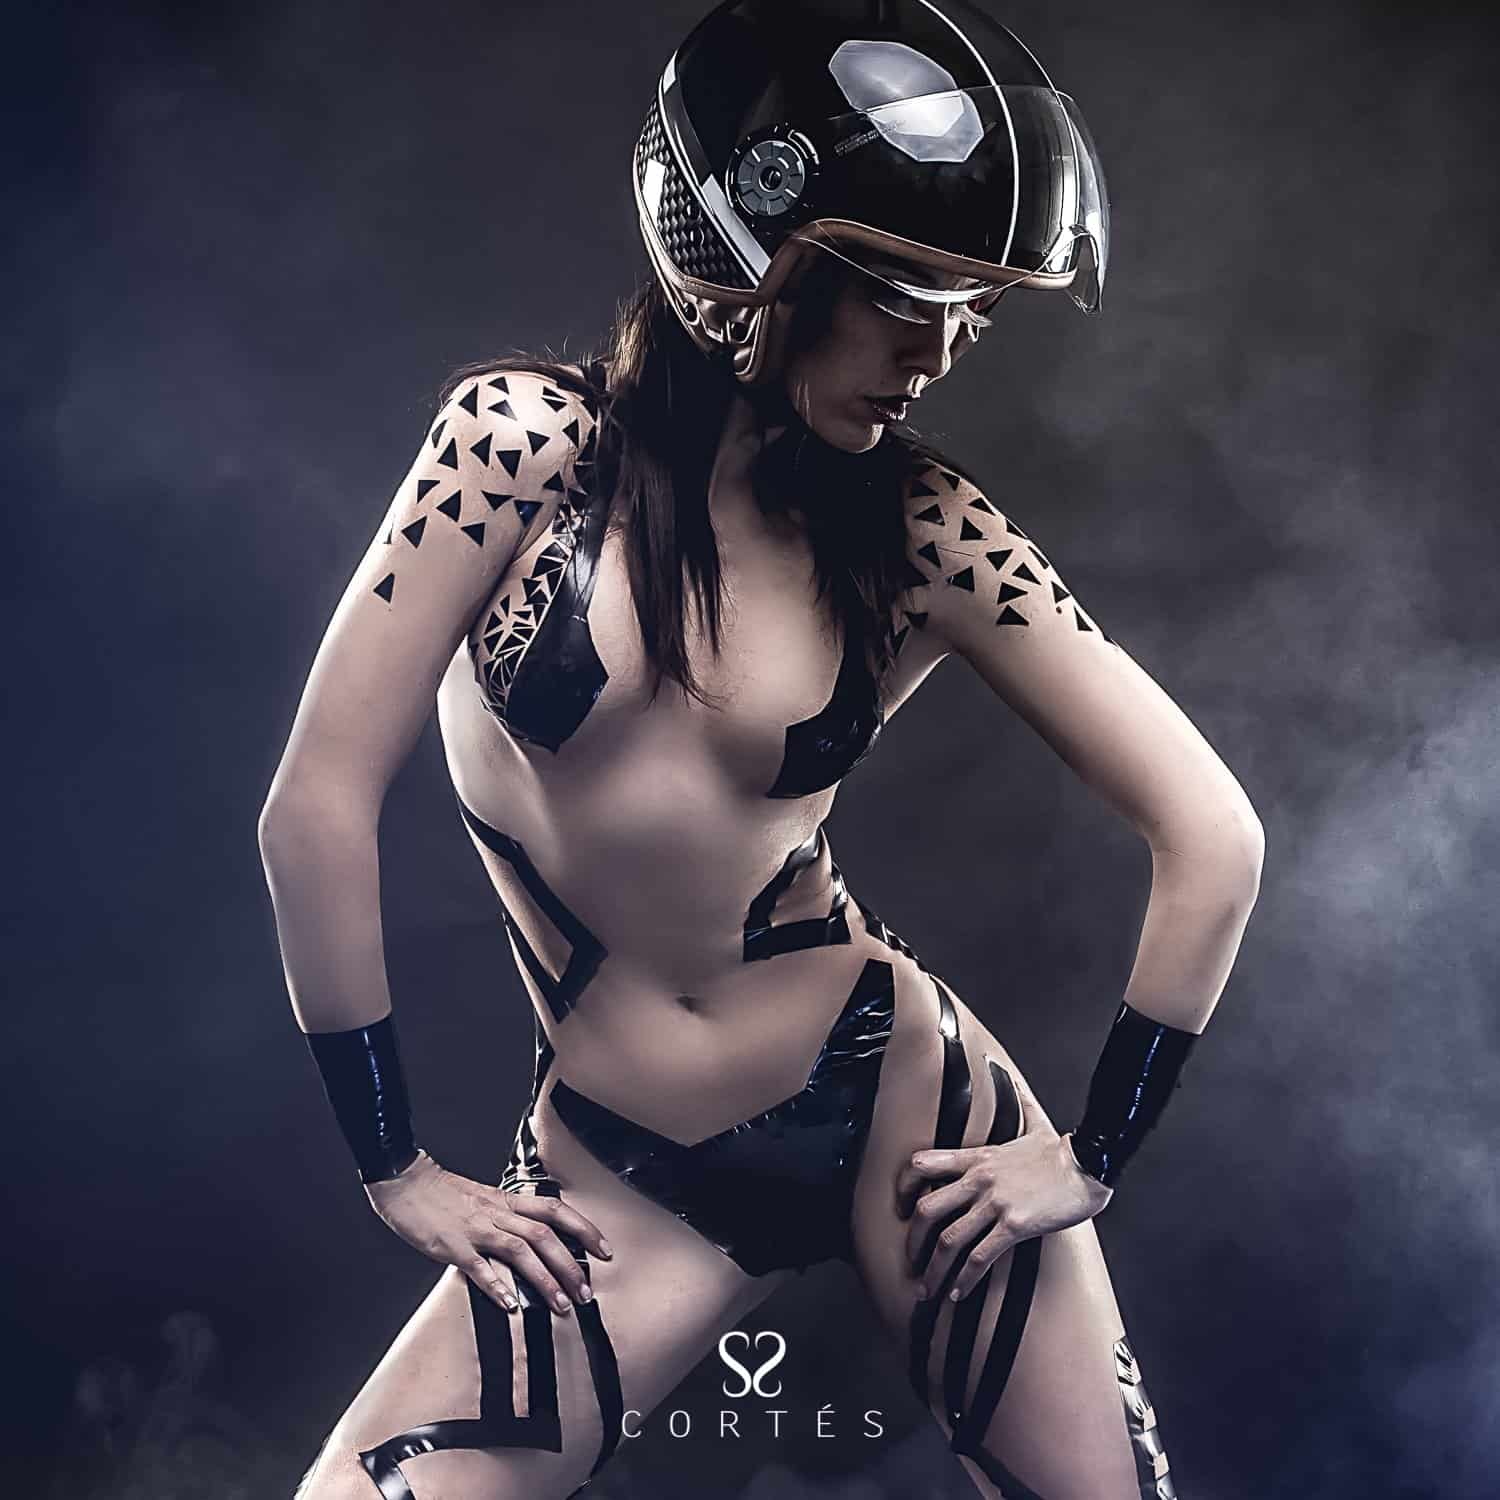 seductive-power-beautiful-woman-with-bike-helmet-naked-and-bla Fernando Cortés - Fotografía creativa y creación de estilismos